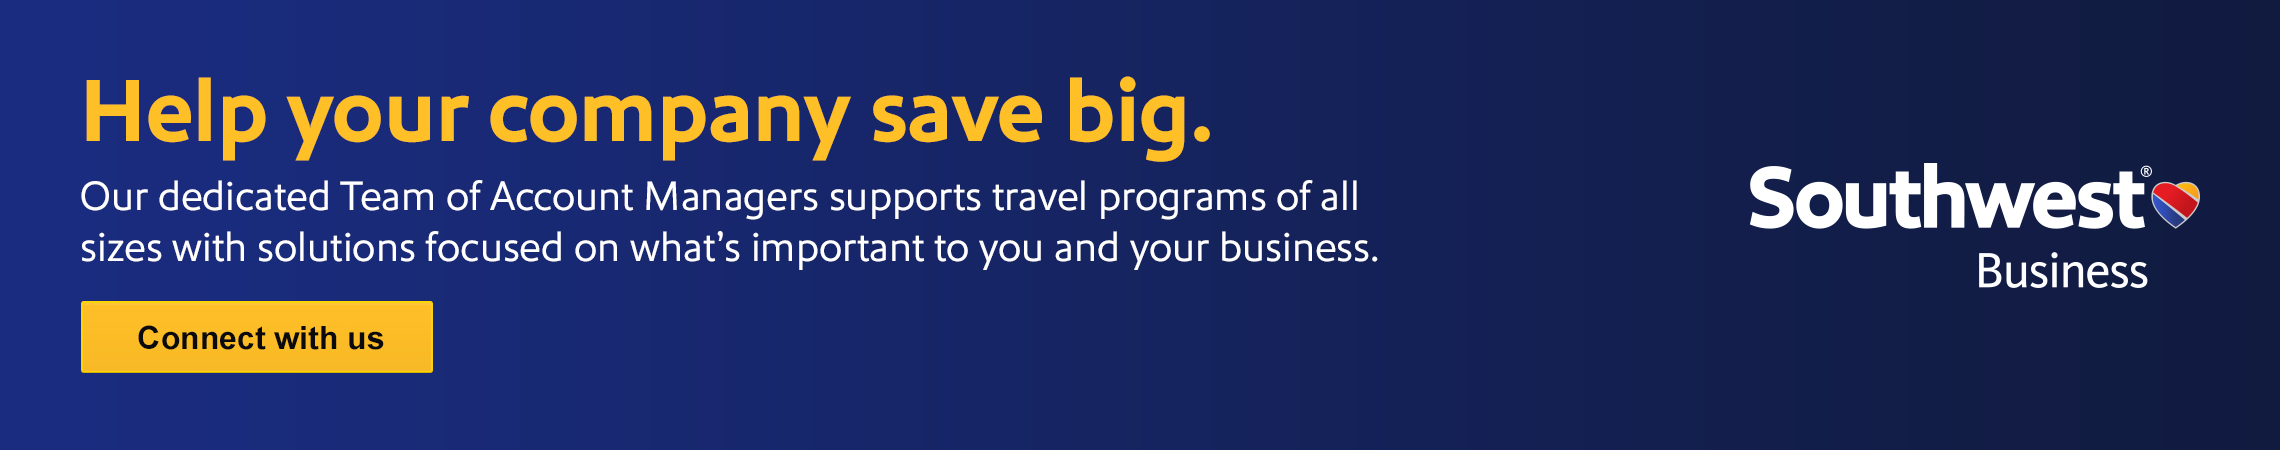 Help your company save big. Our dedicated Team of Account Managers supports travel programs of all sizes with solutions focused on what's important to you and your business.